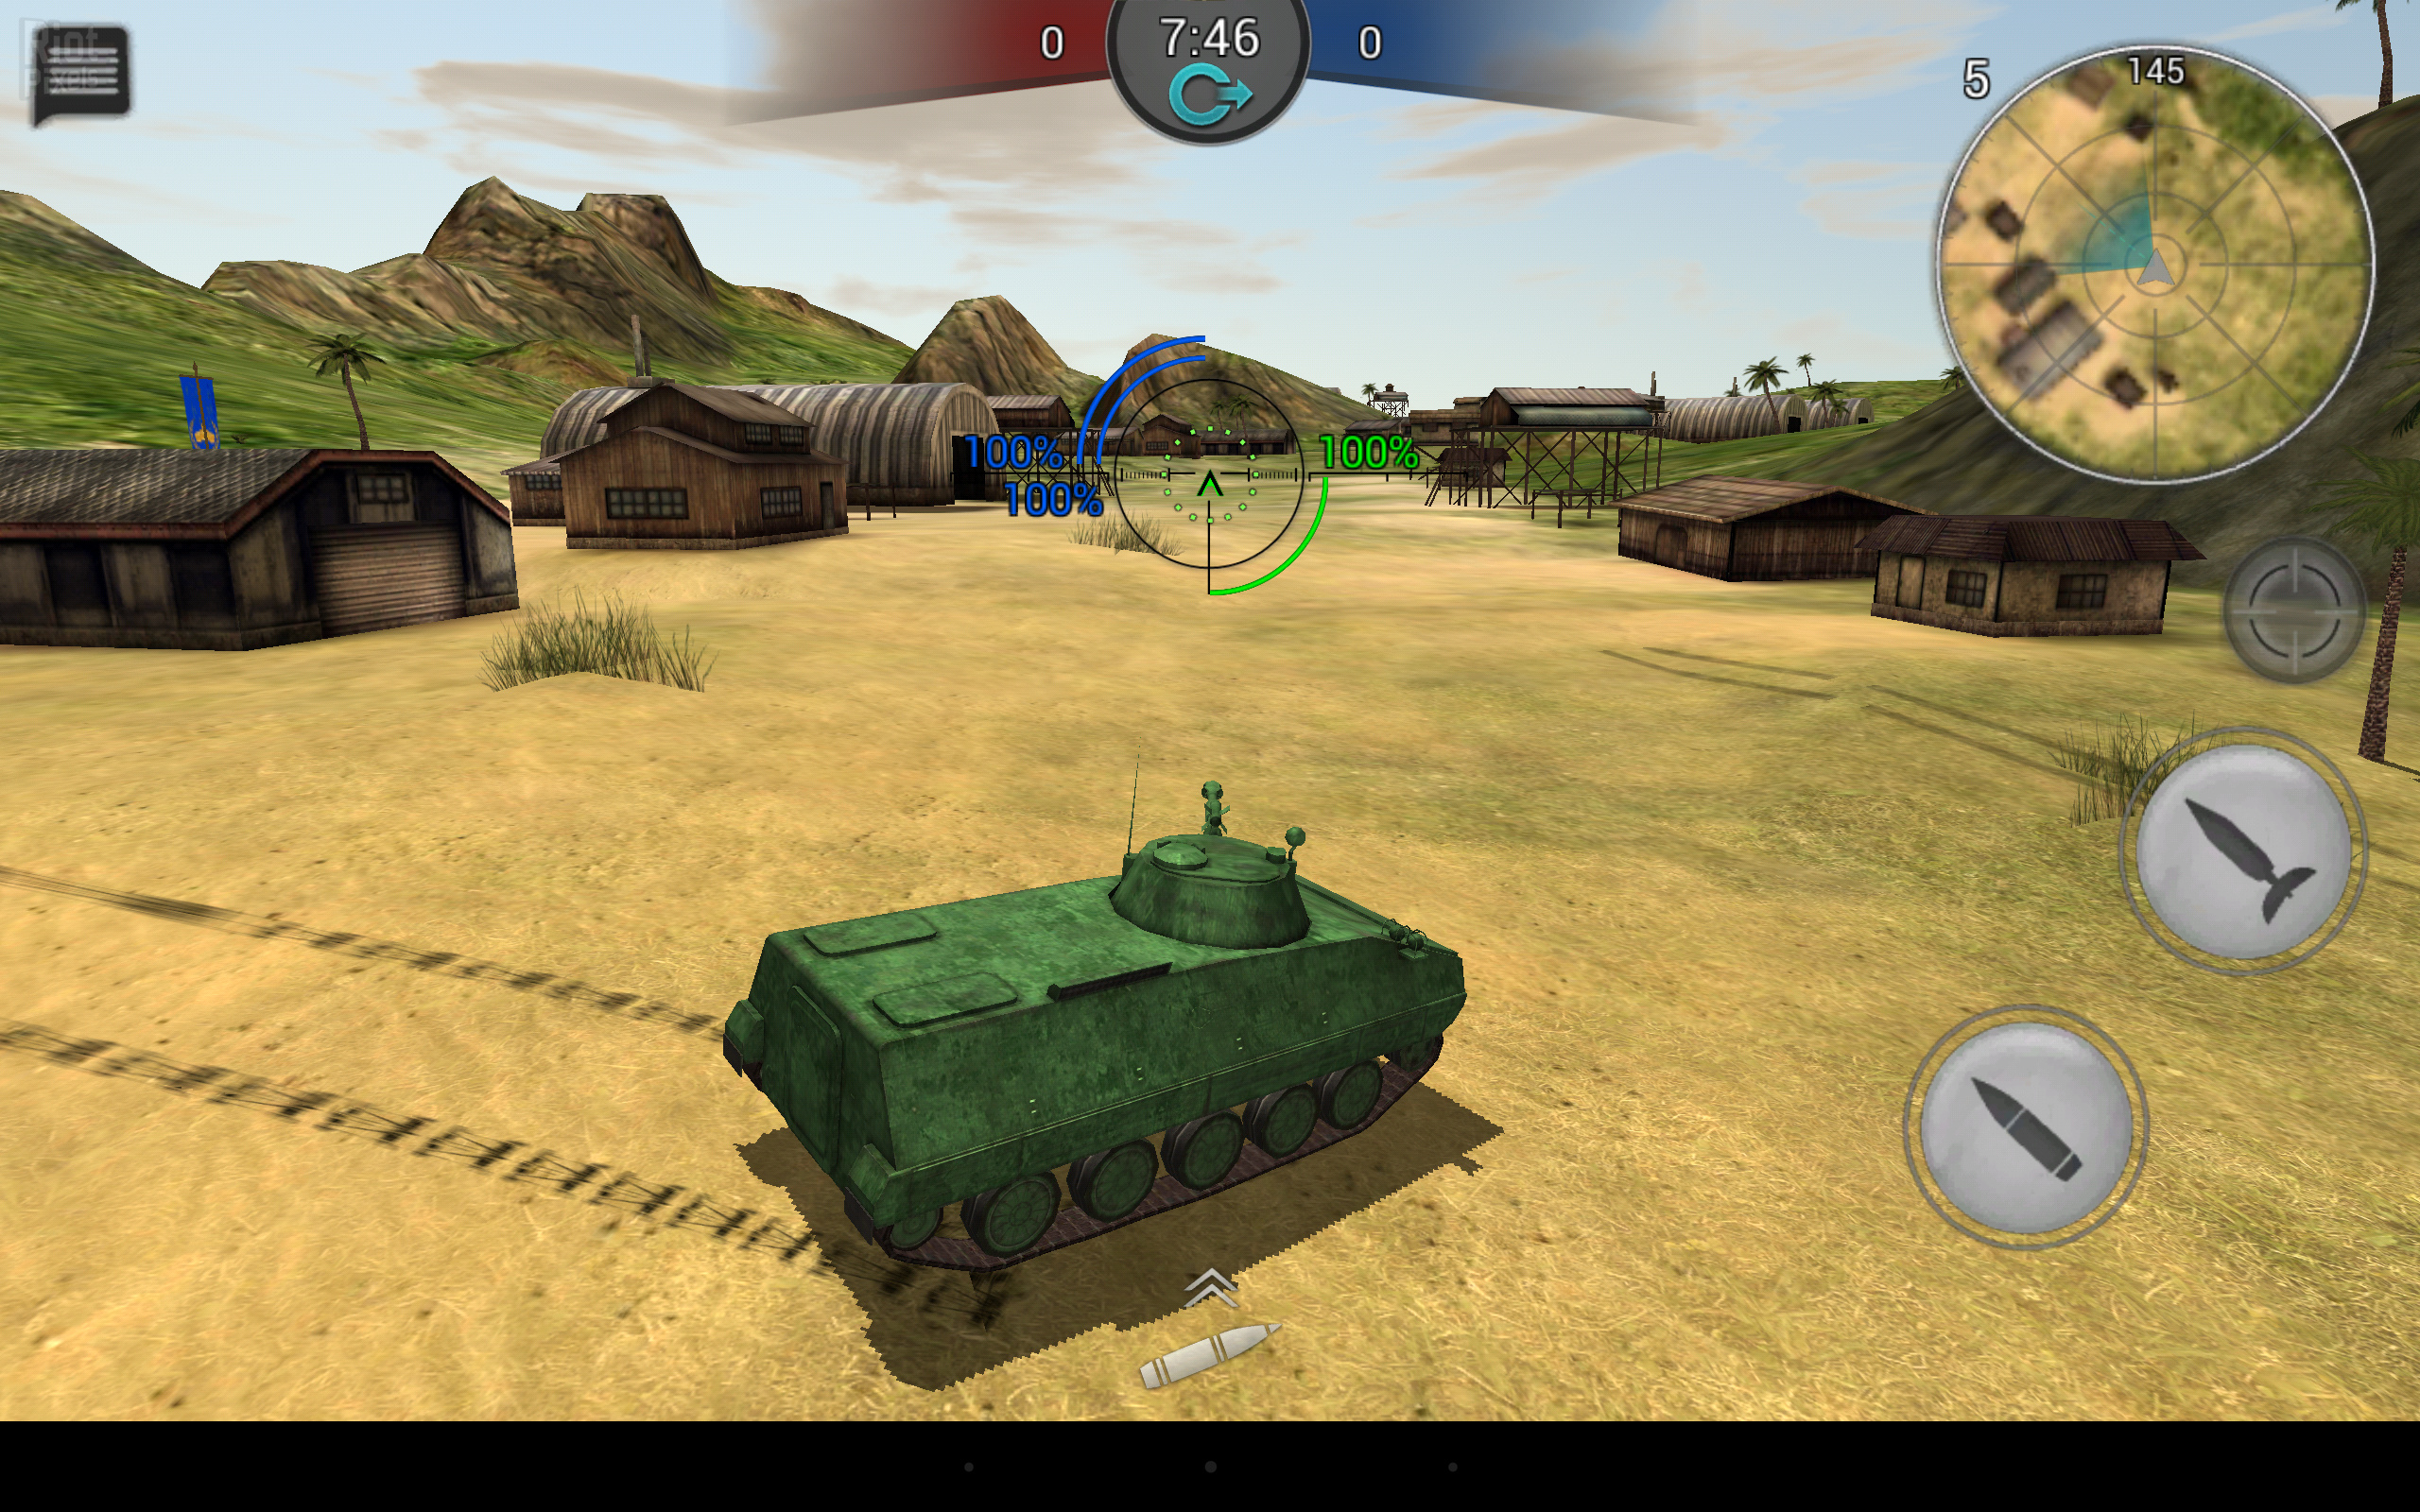 Jeux Team, tanks - - Jeux 3D en ligne Tanks Online - Play Tanks Online on Crazy